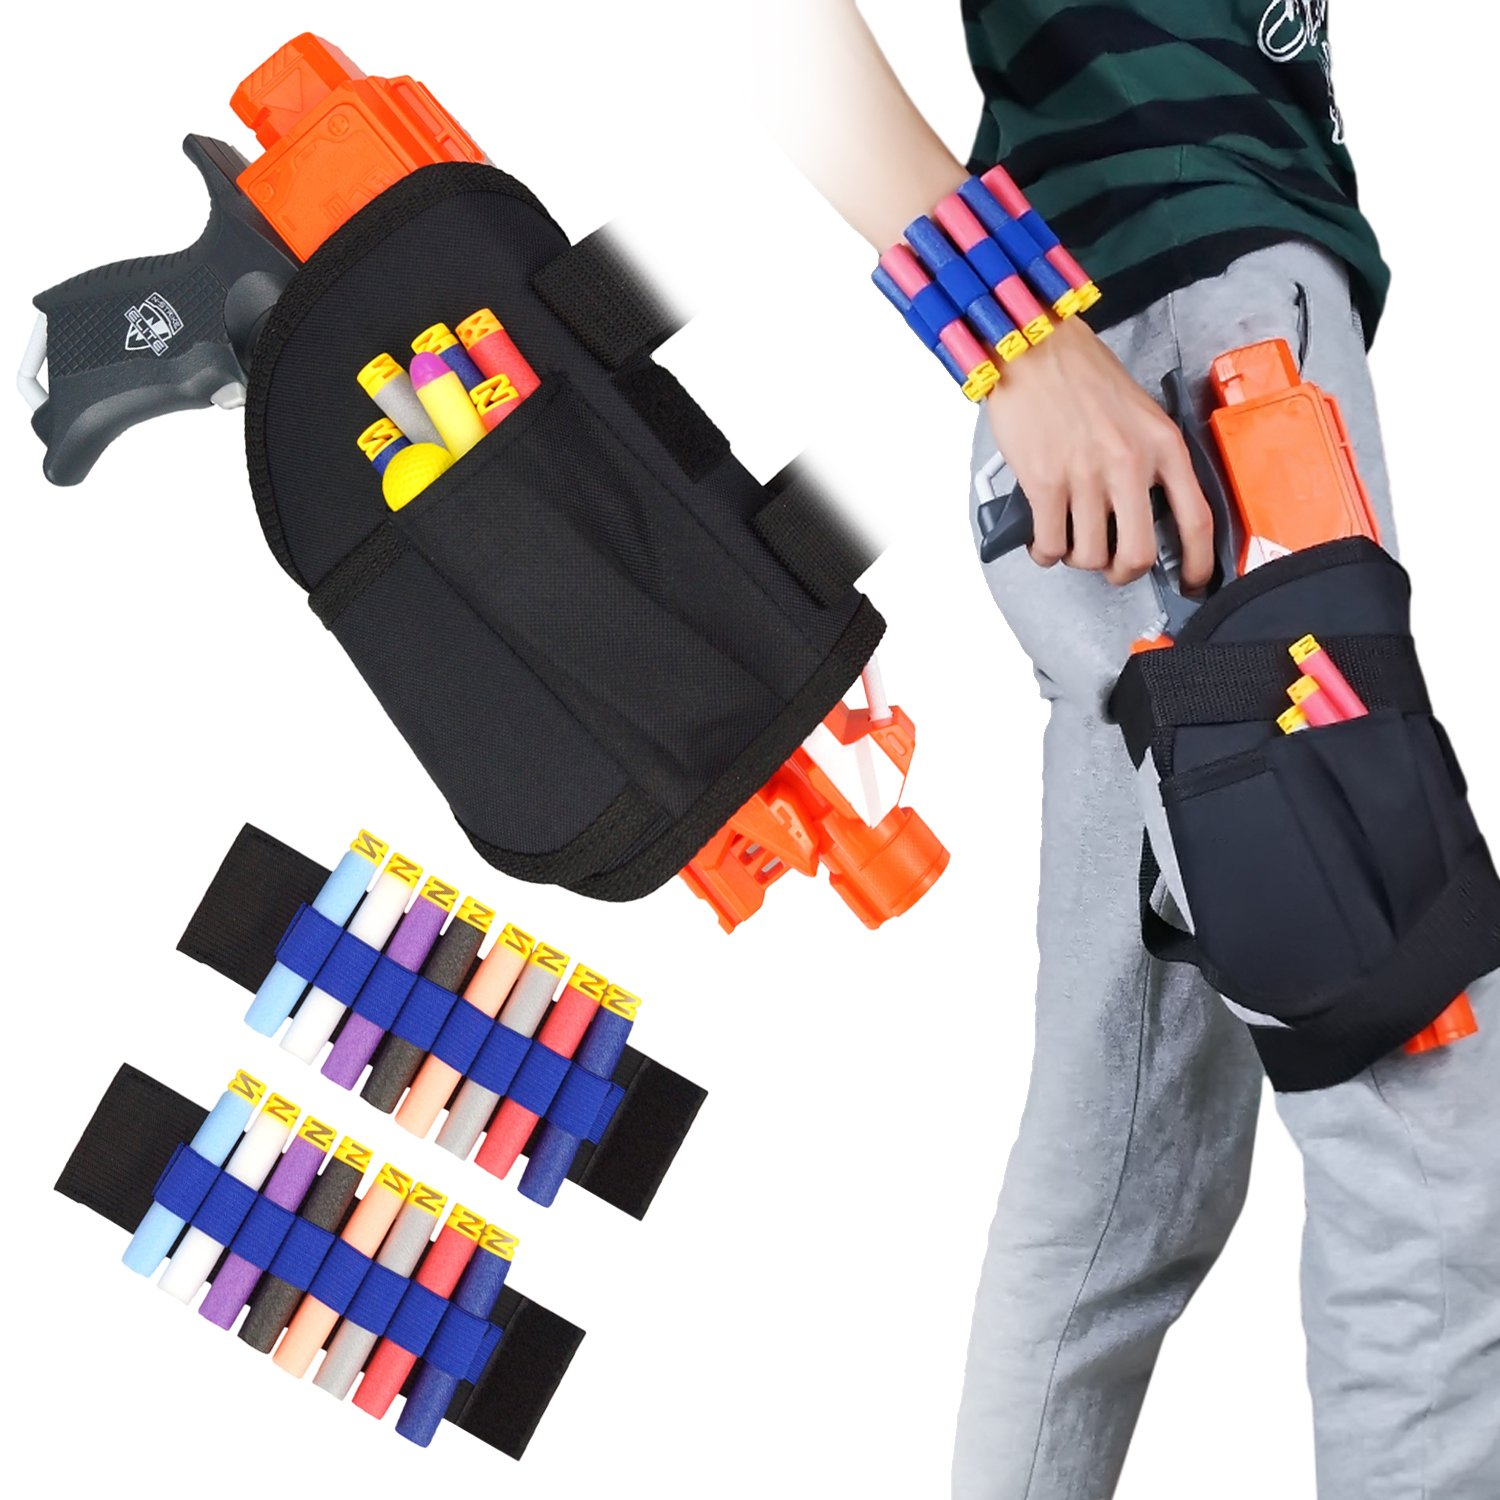 holster kit with a sling bag